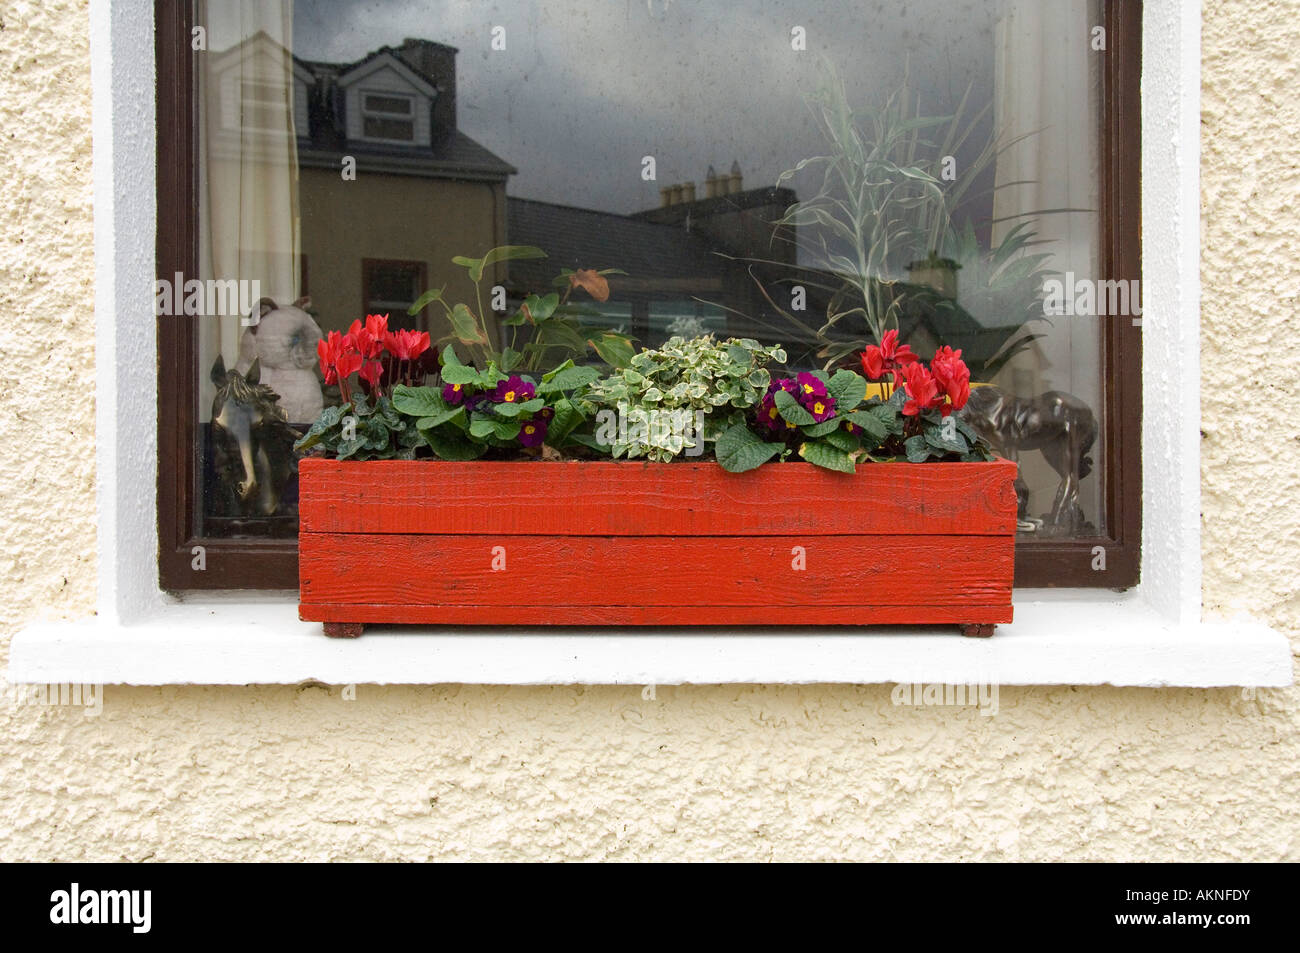 A Home Made Window Box Of Flowers In The Village Of Roundstone Stock